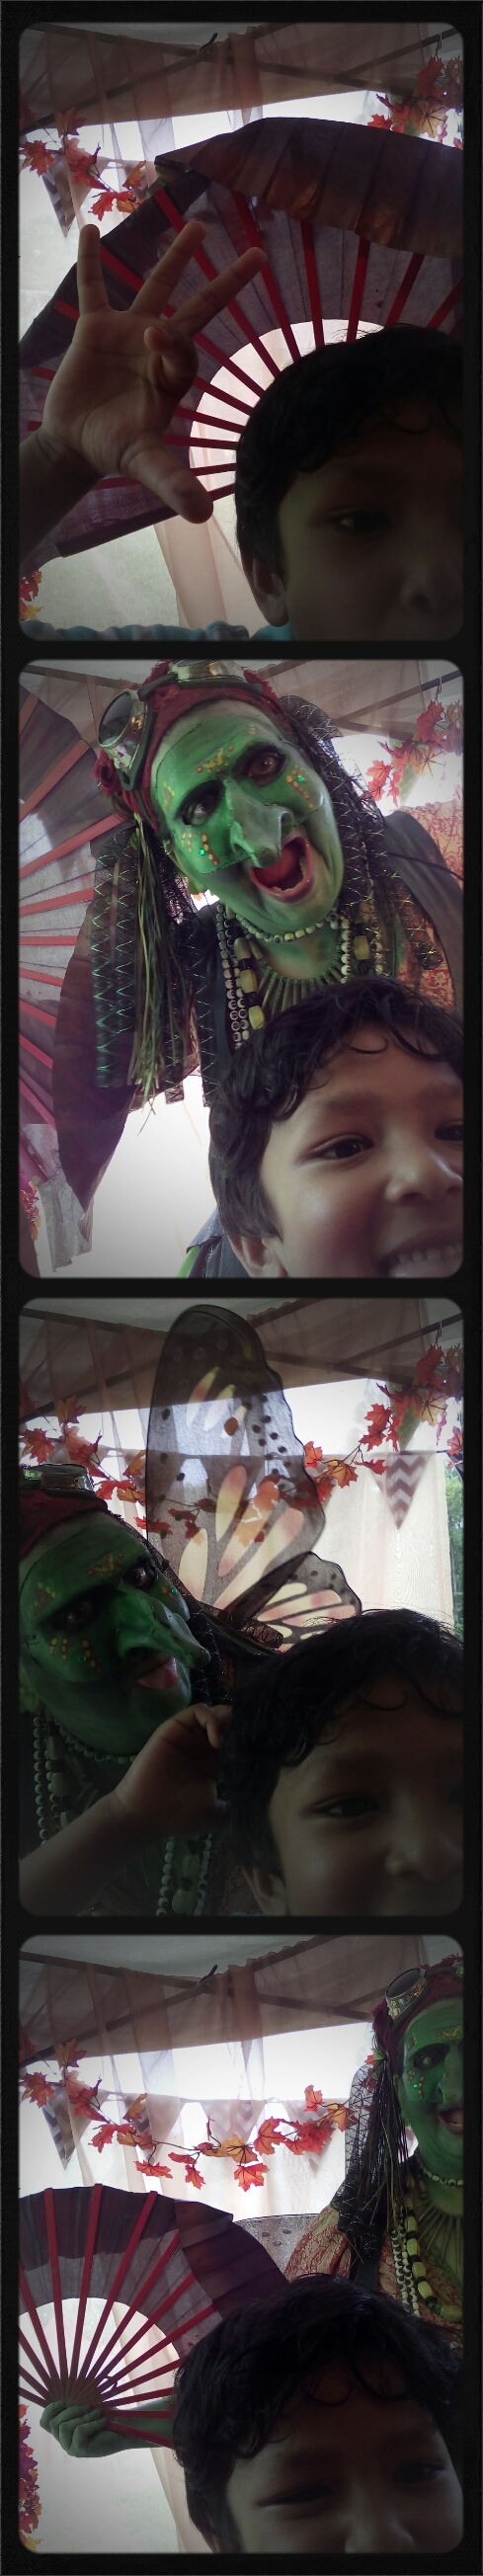 Pocketbooth_20150613155456